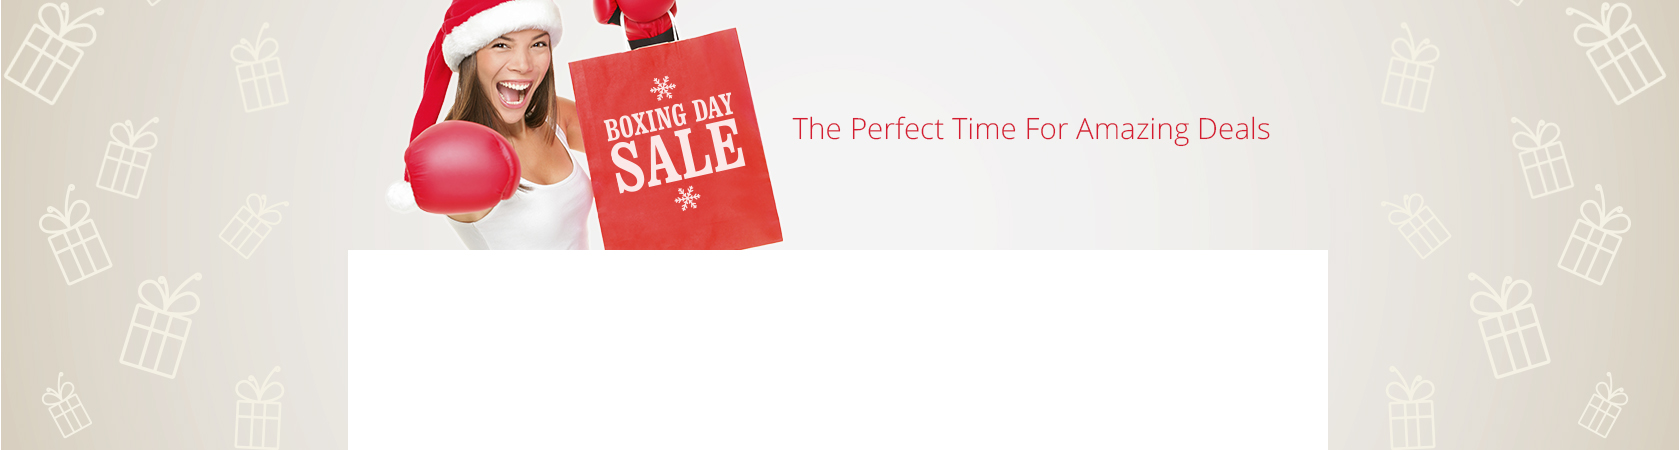 ϟ Boxing Day Bonanza ϟ